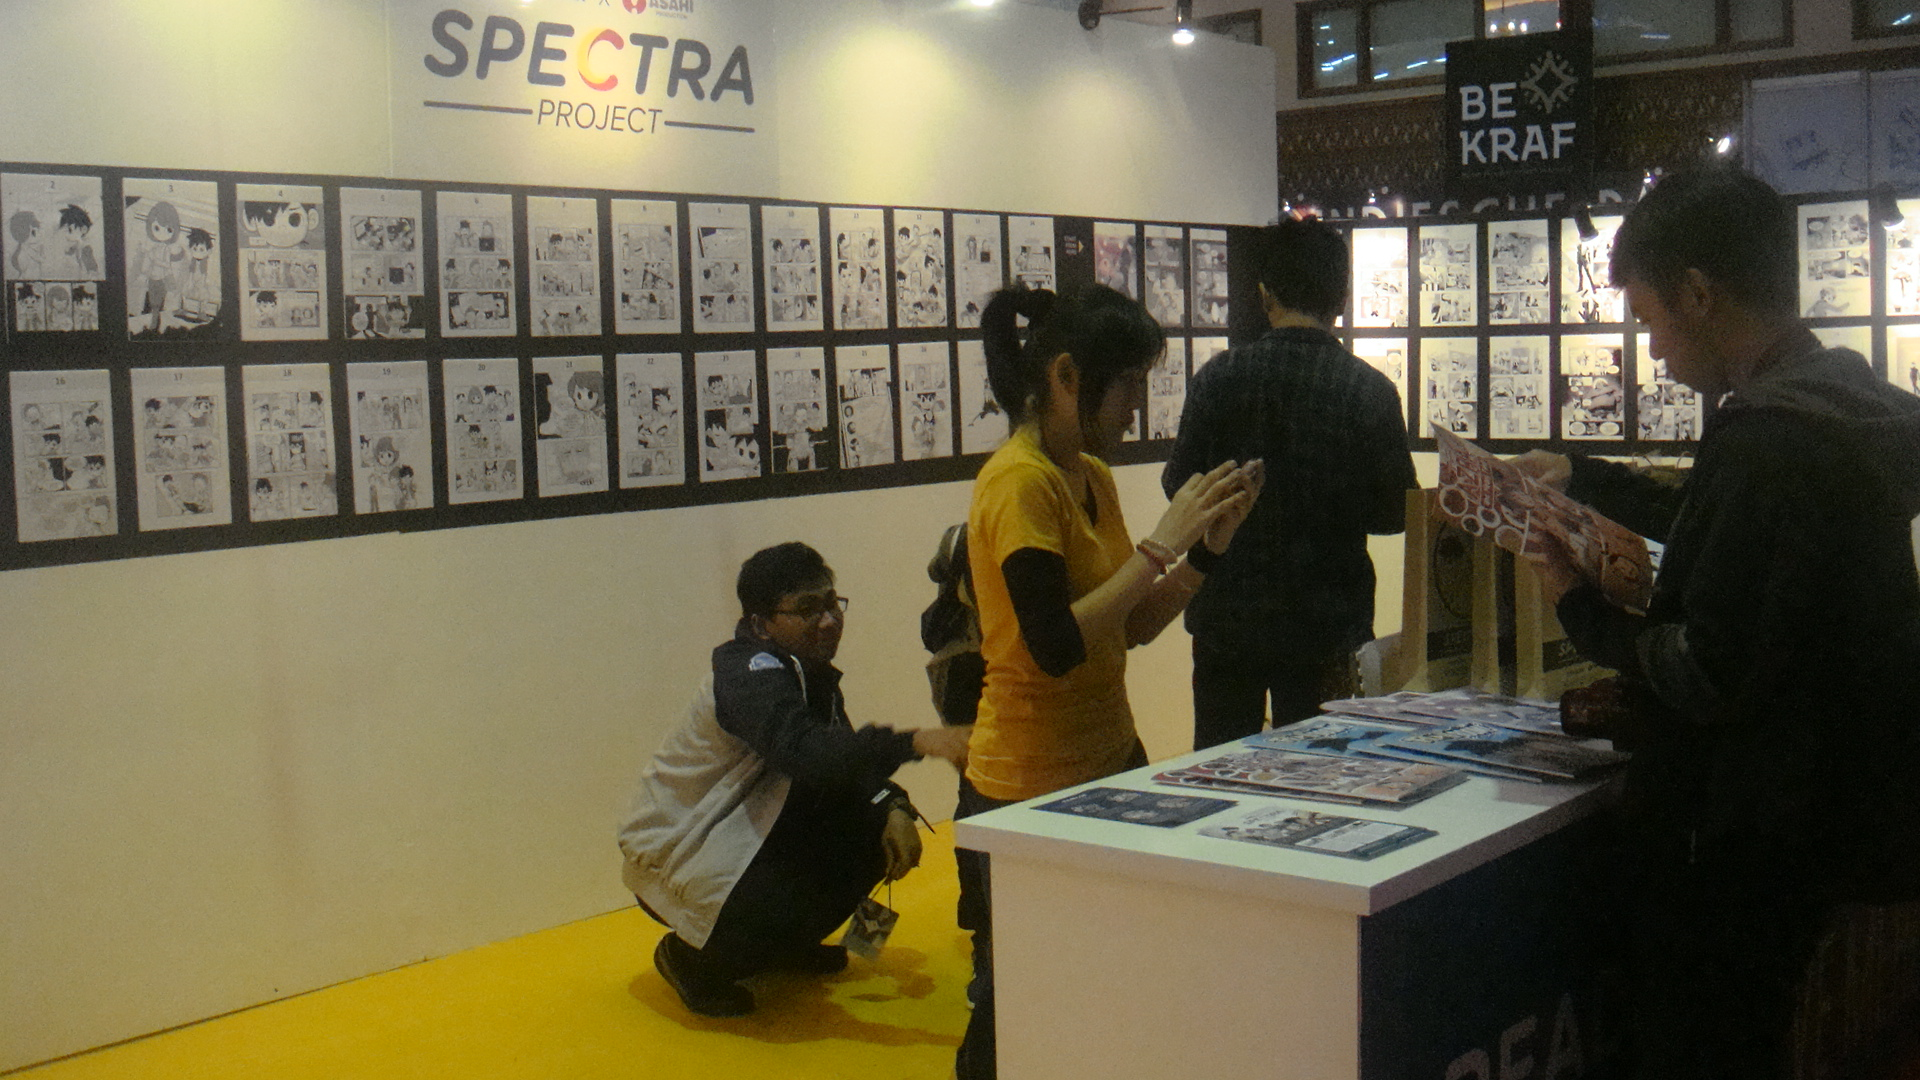 Spectra Project